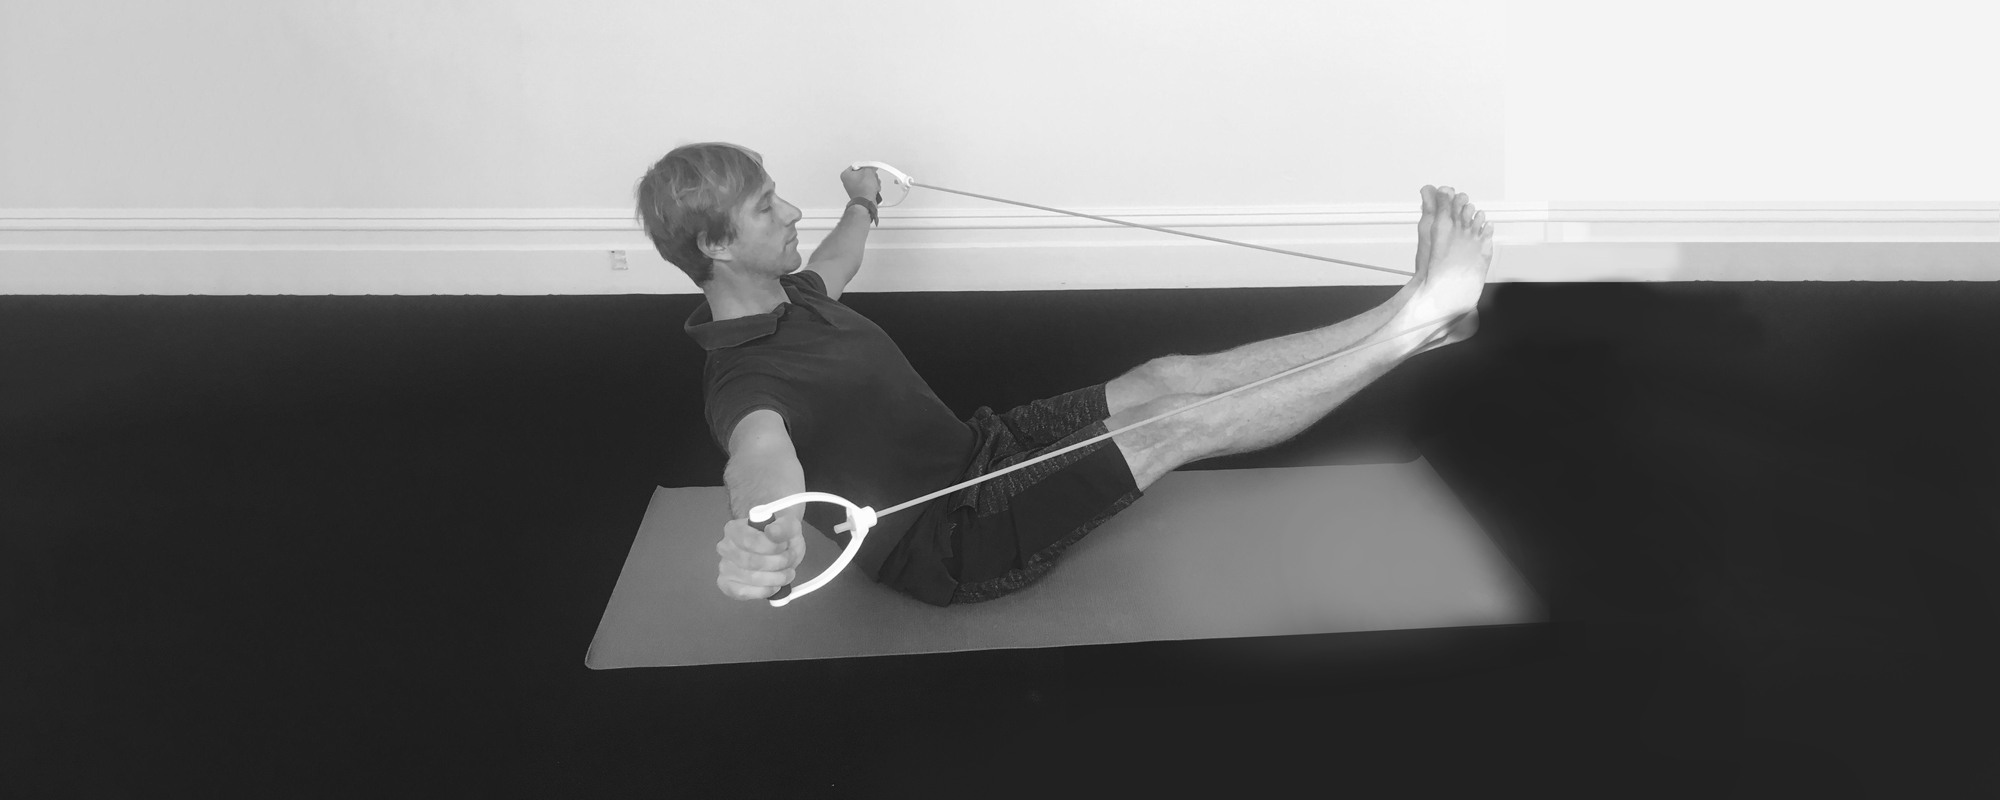 touch point massage pilates exercise